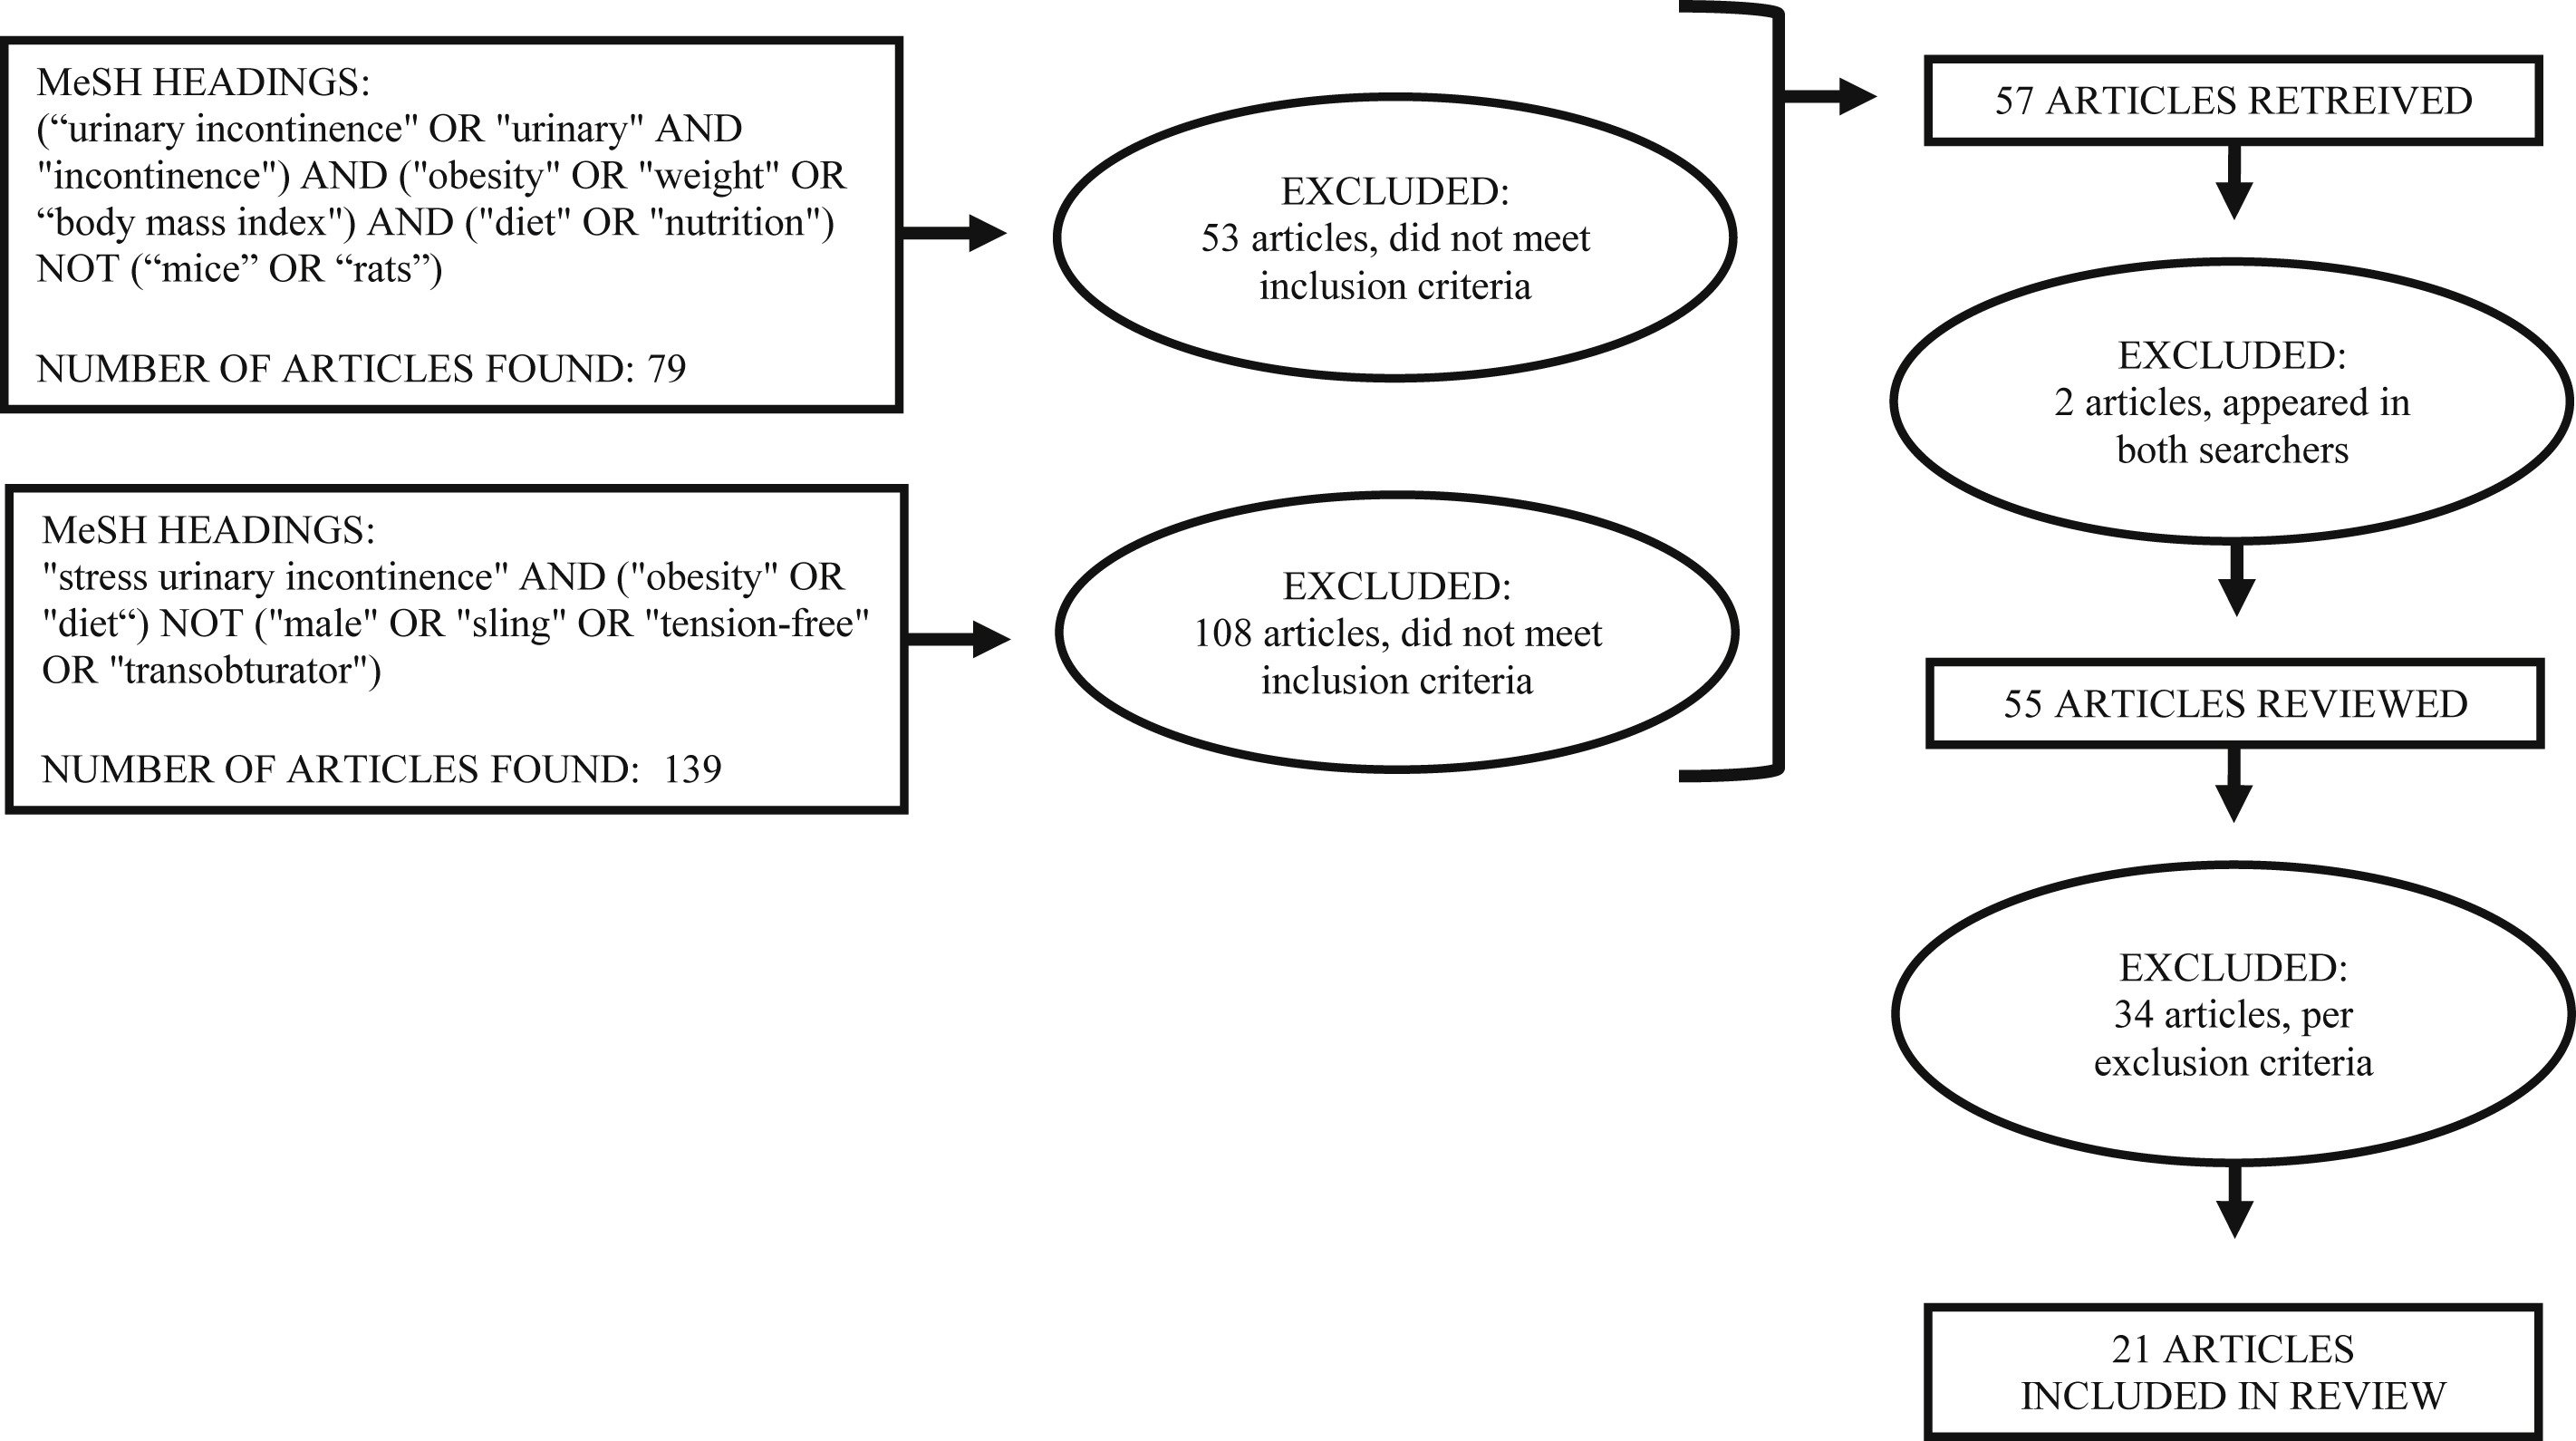 obesity with comorbid stress urinary incontinence in women